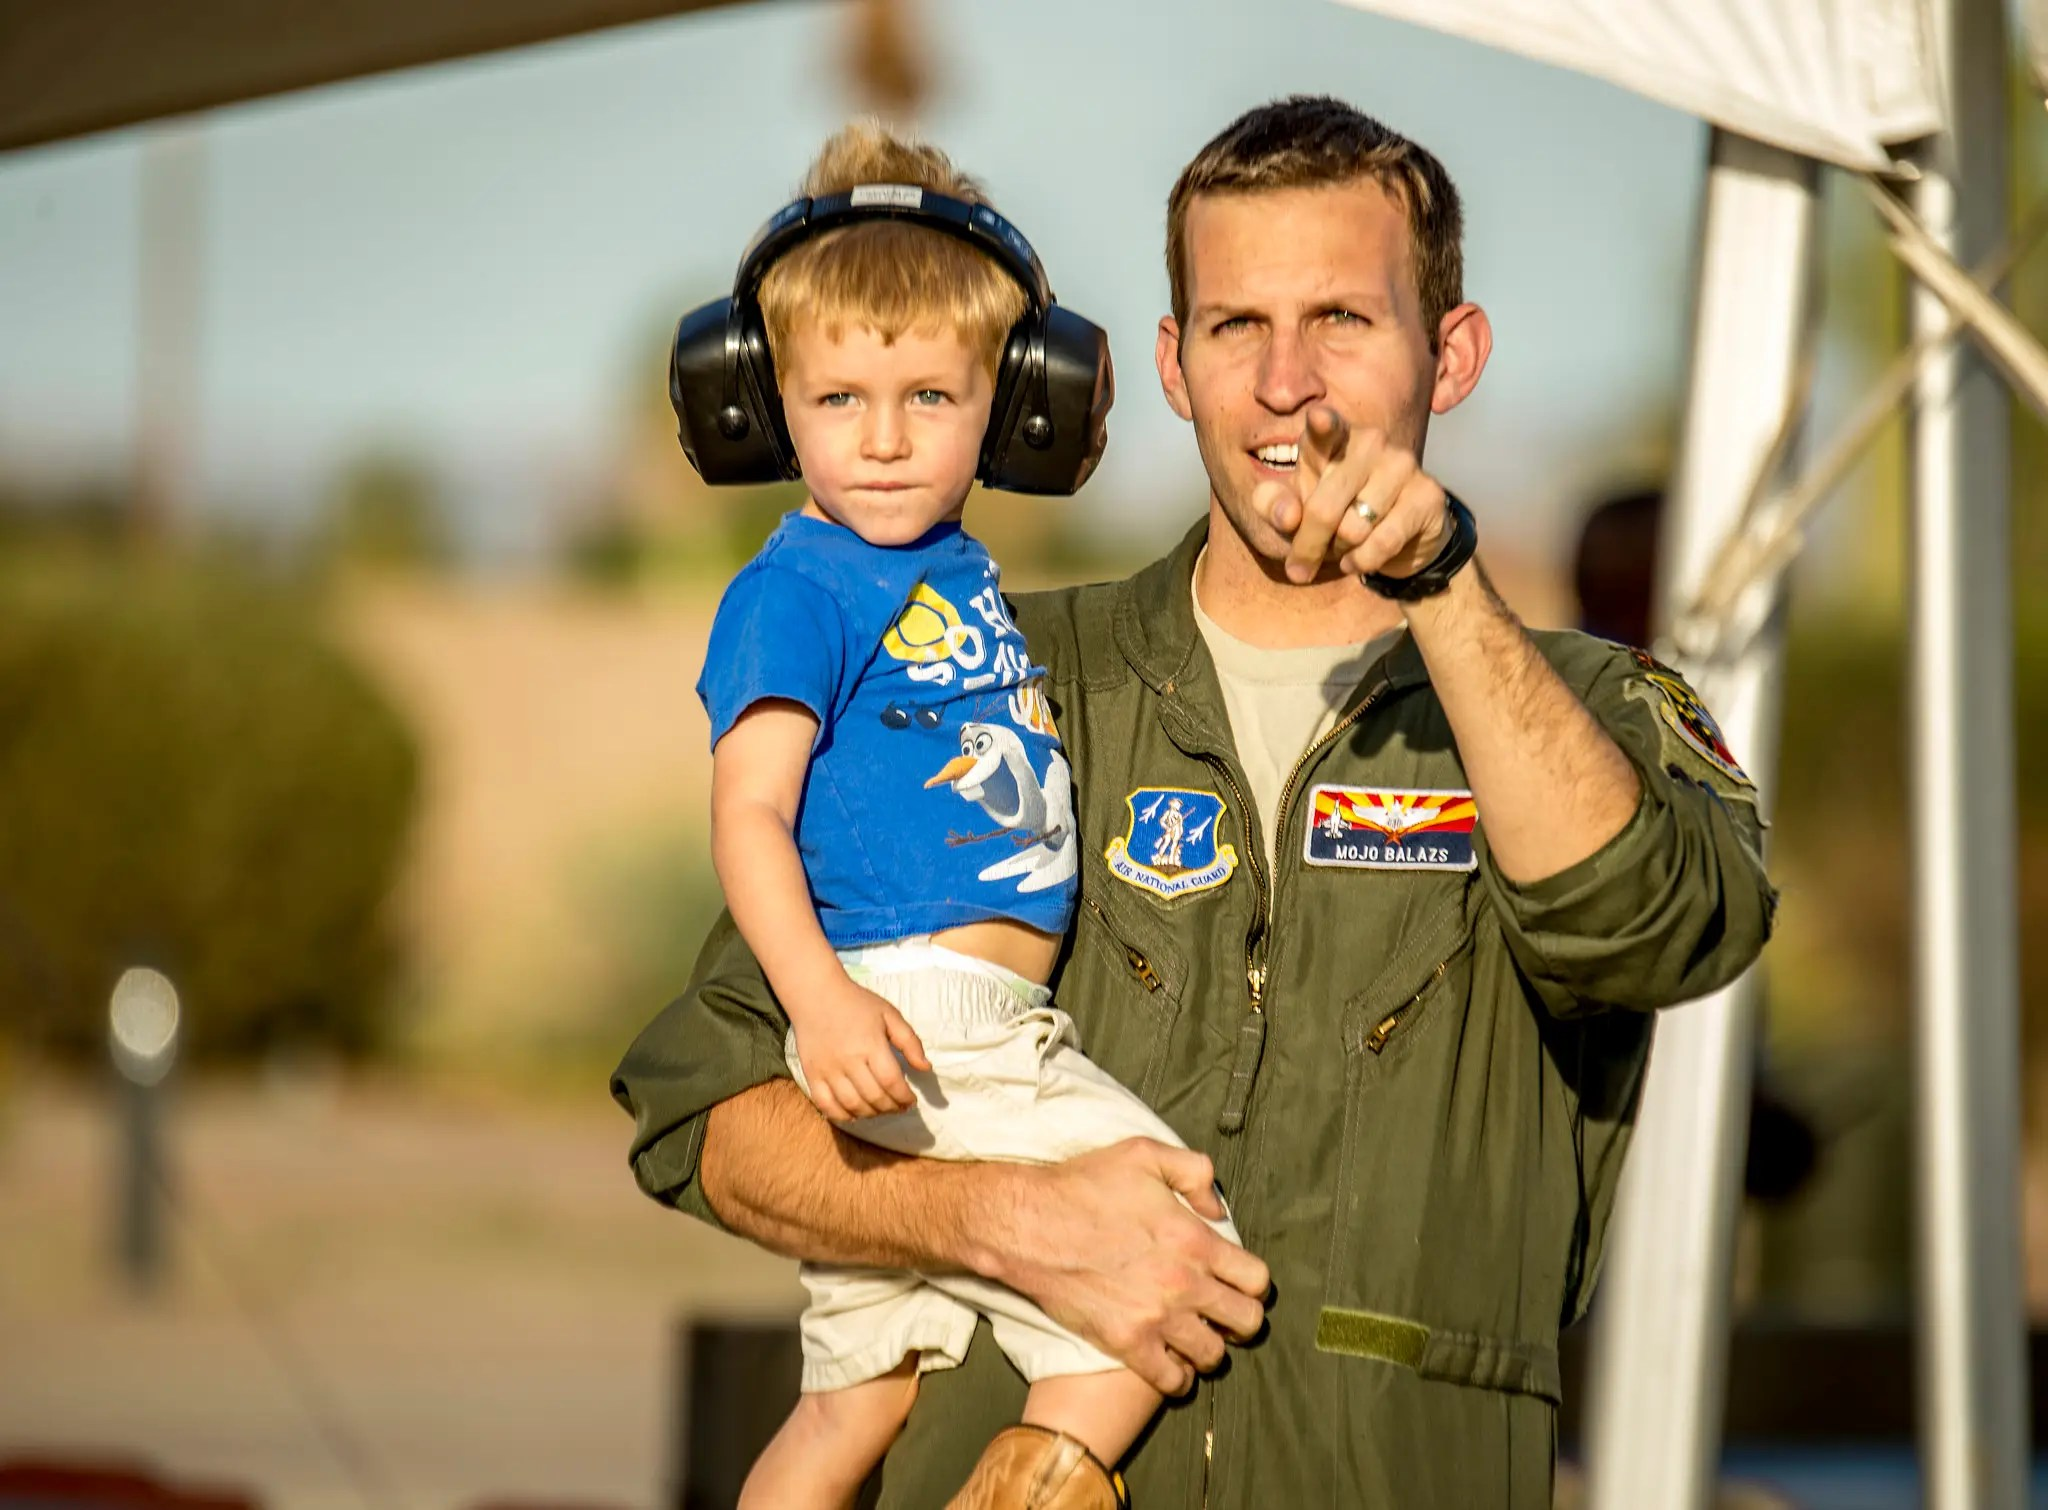 An airman and his son take in the sights.